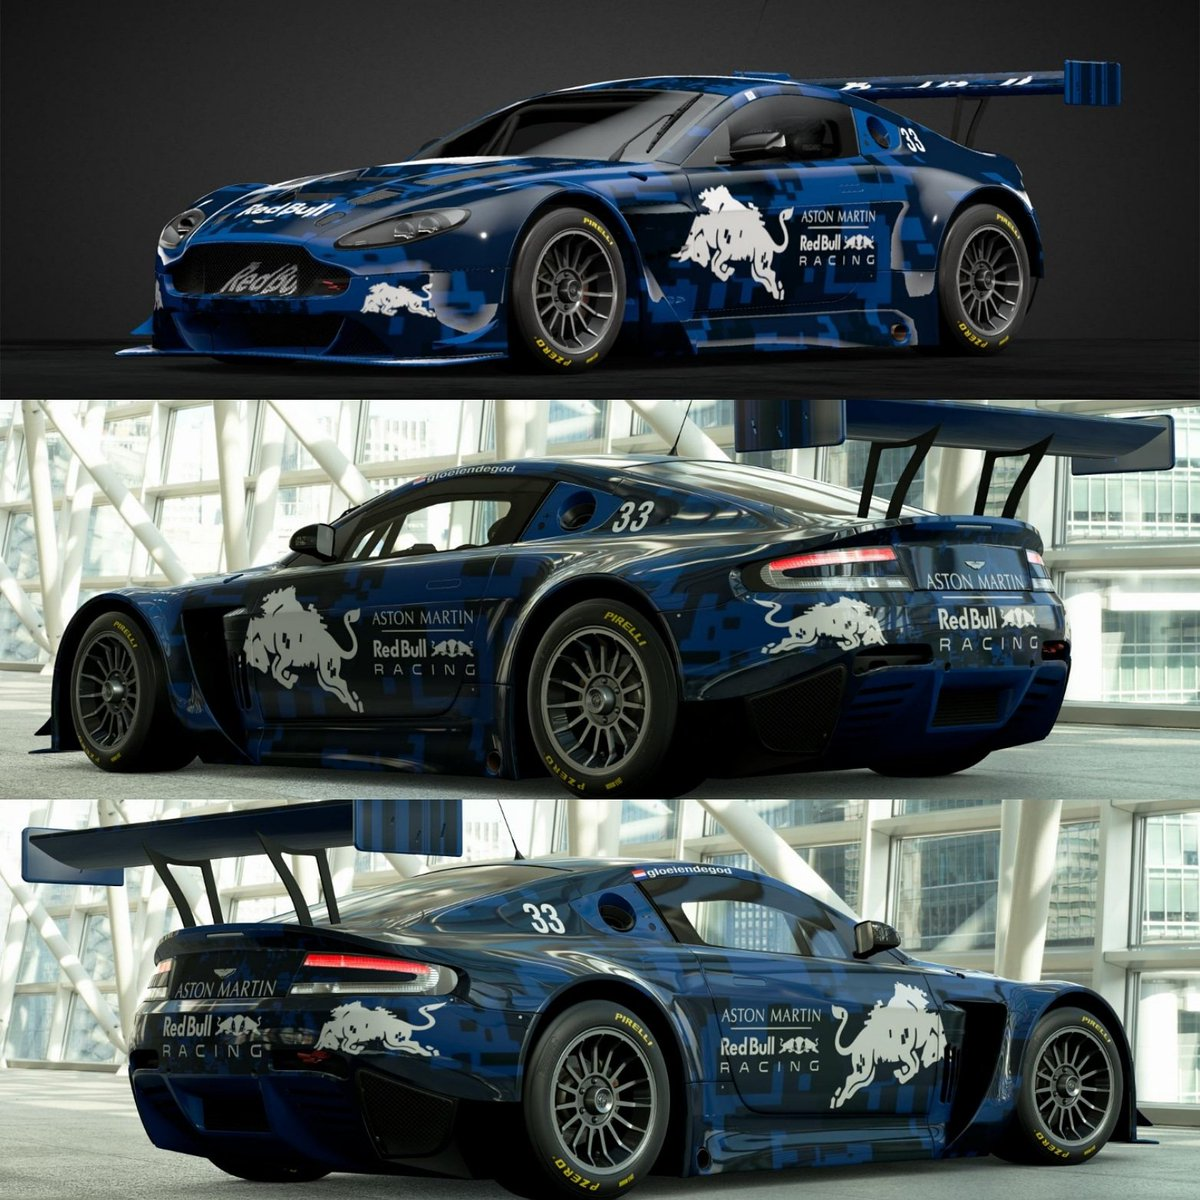 Red Bull Racing On Twitter Watch This Astonmartin Db11 Get The